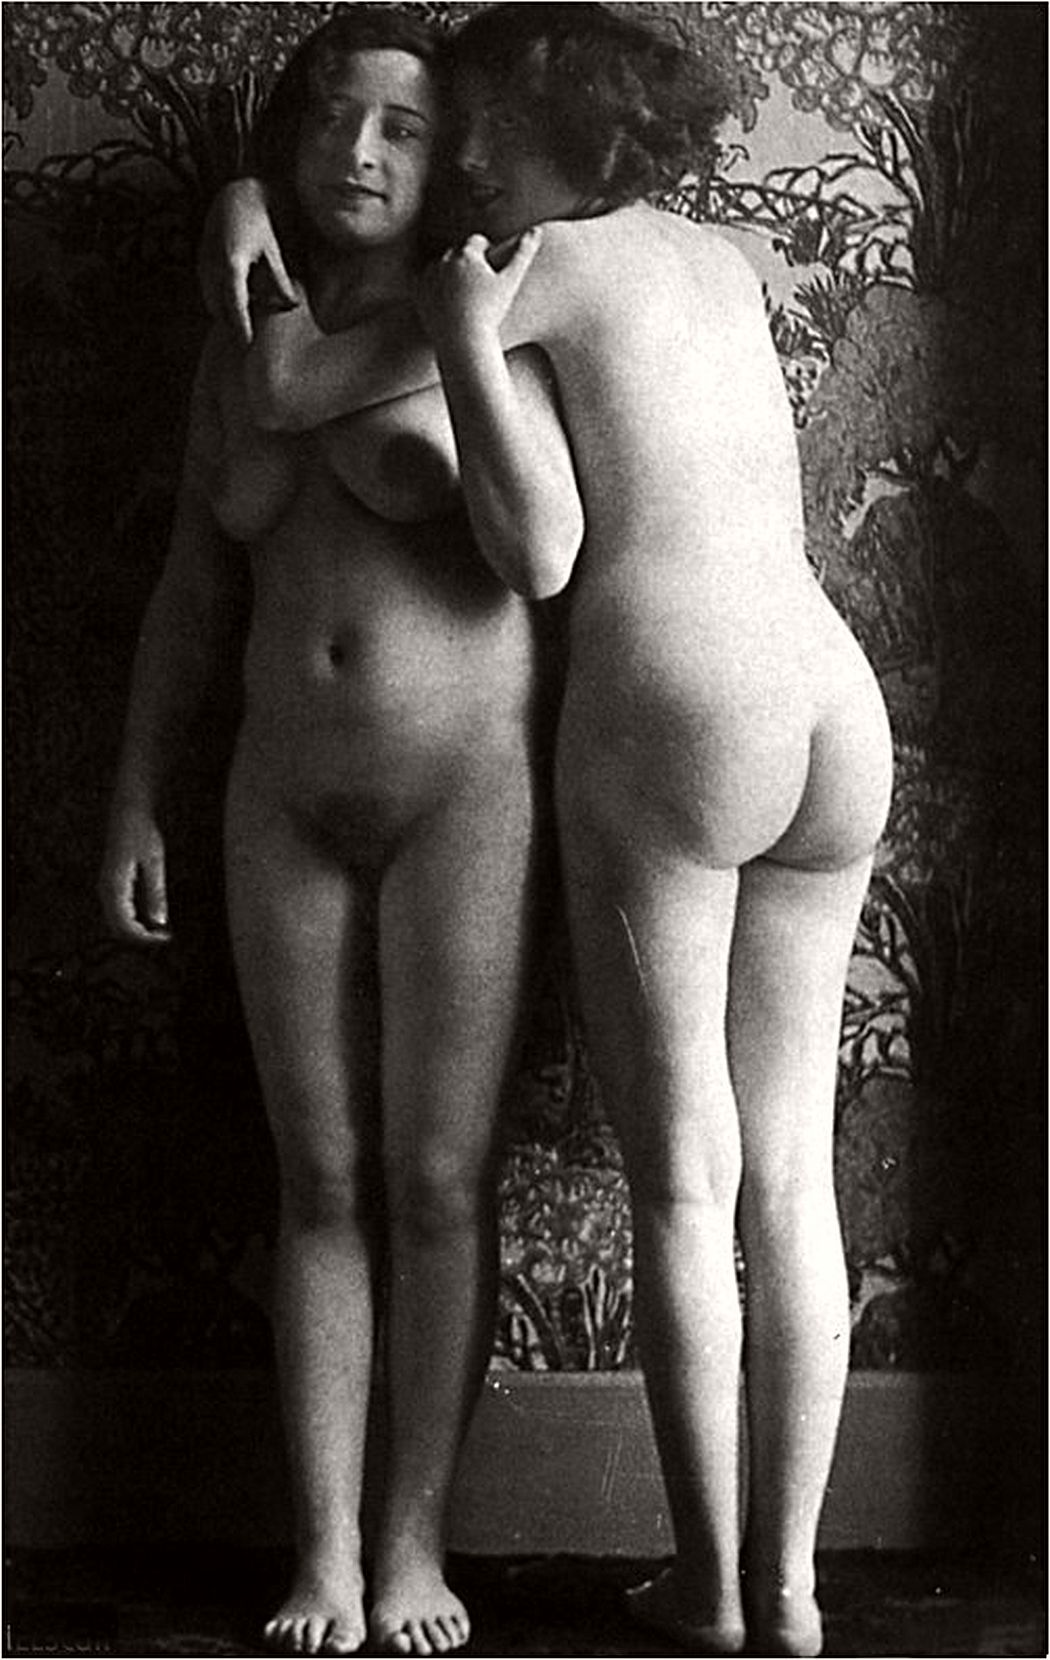 Consider, vintage nude women erotica have hit